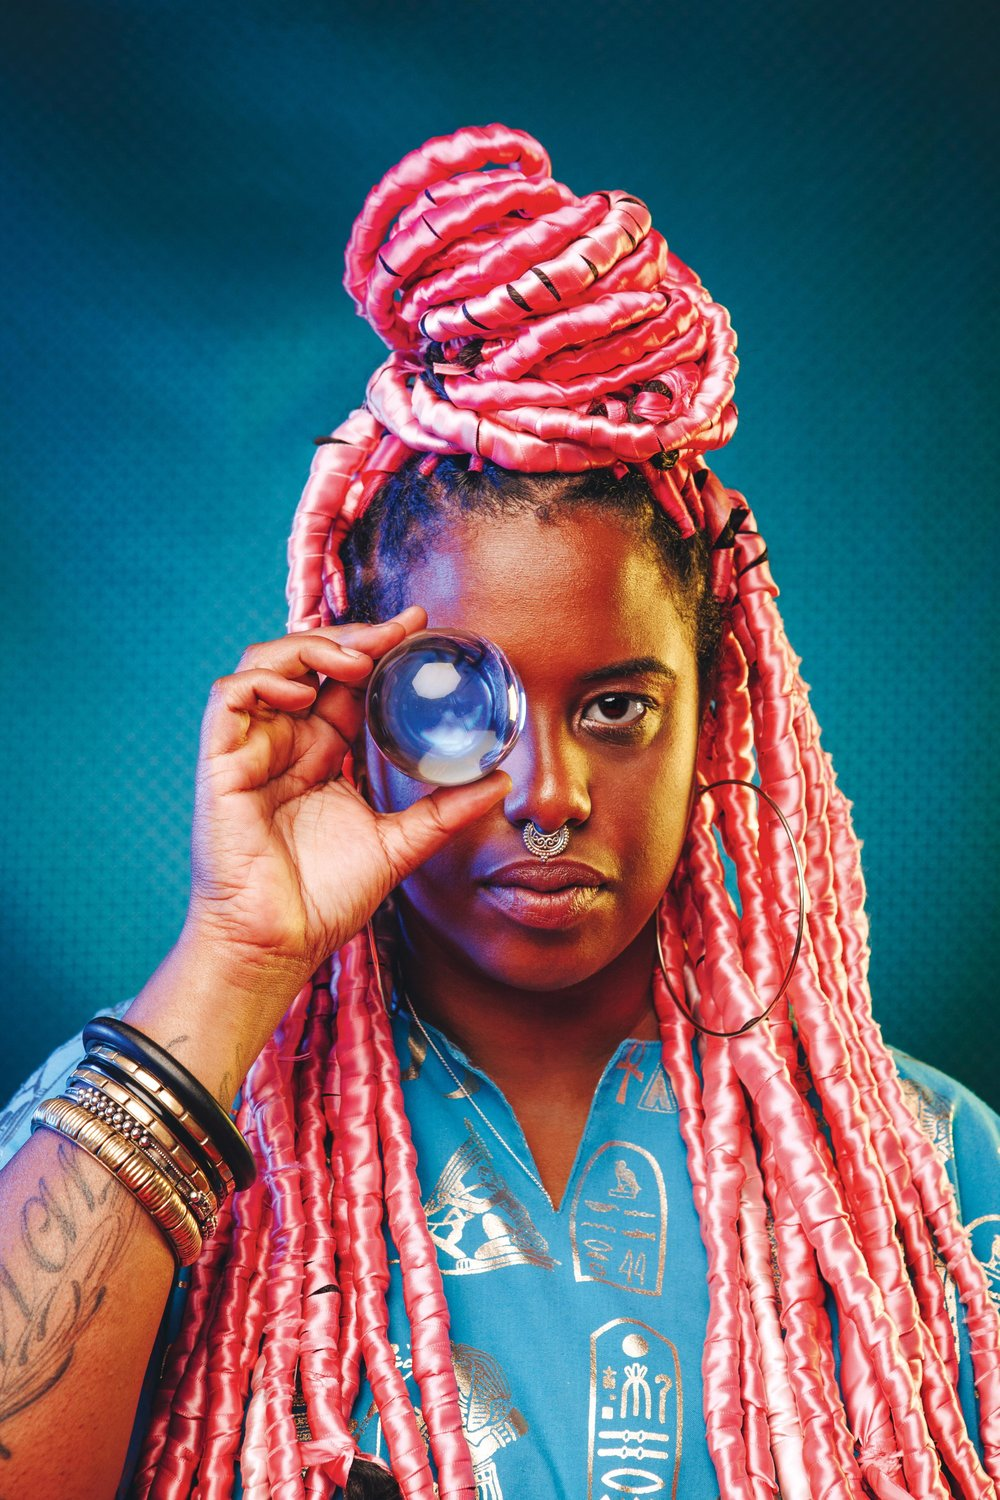 Witch Prophet (Toronto, ON)Witch Prophet is an evolution of Toronto based, Ethiopian/Eritrean singer-songwriter Ayo Leilani. A soundscape of vocal layers, loops, raps and harmonies on a bed of hip-hop, jazz and soul-inspired beats. Think Erykah Badu meets Lauryn Hill meets Jill Scott. -